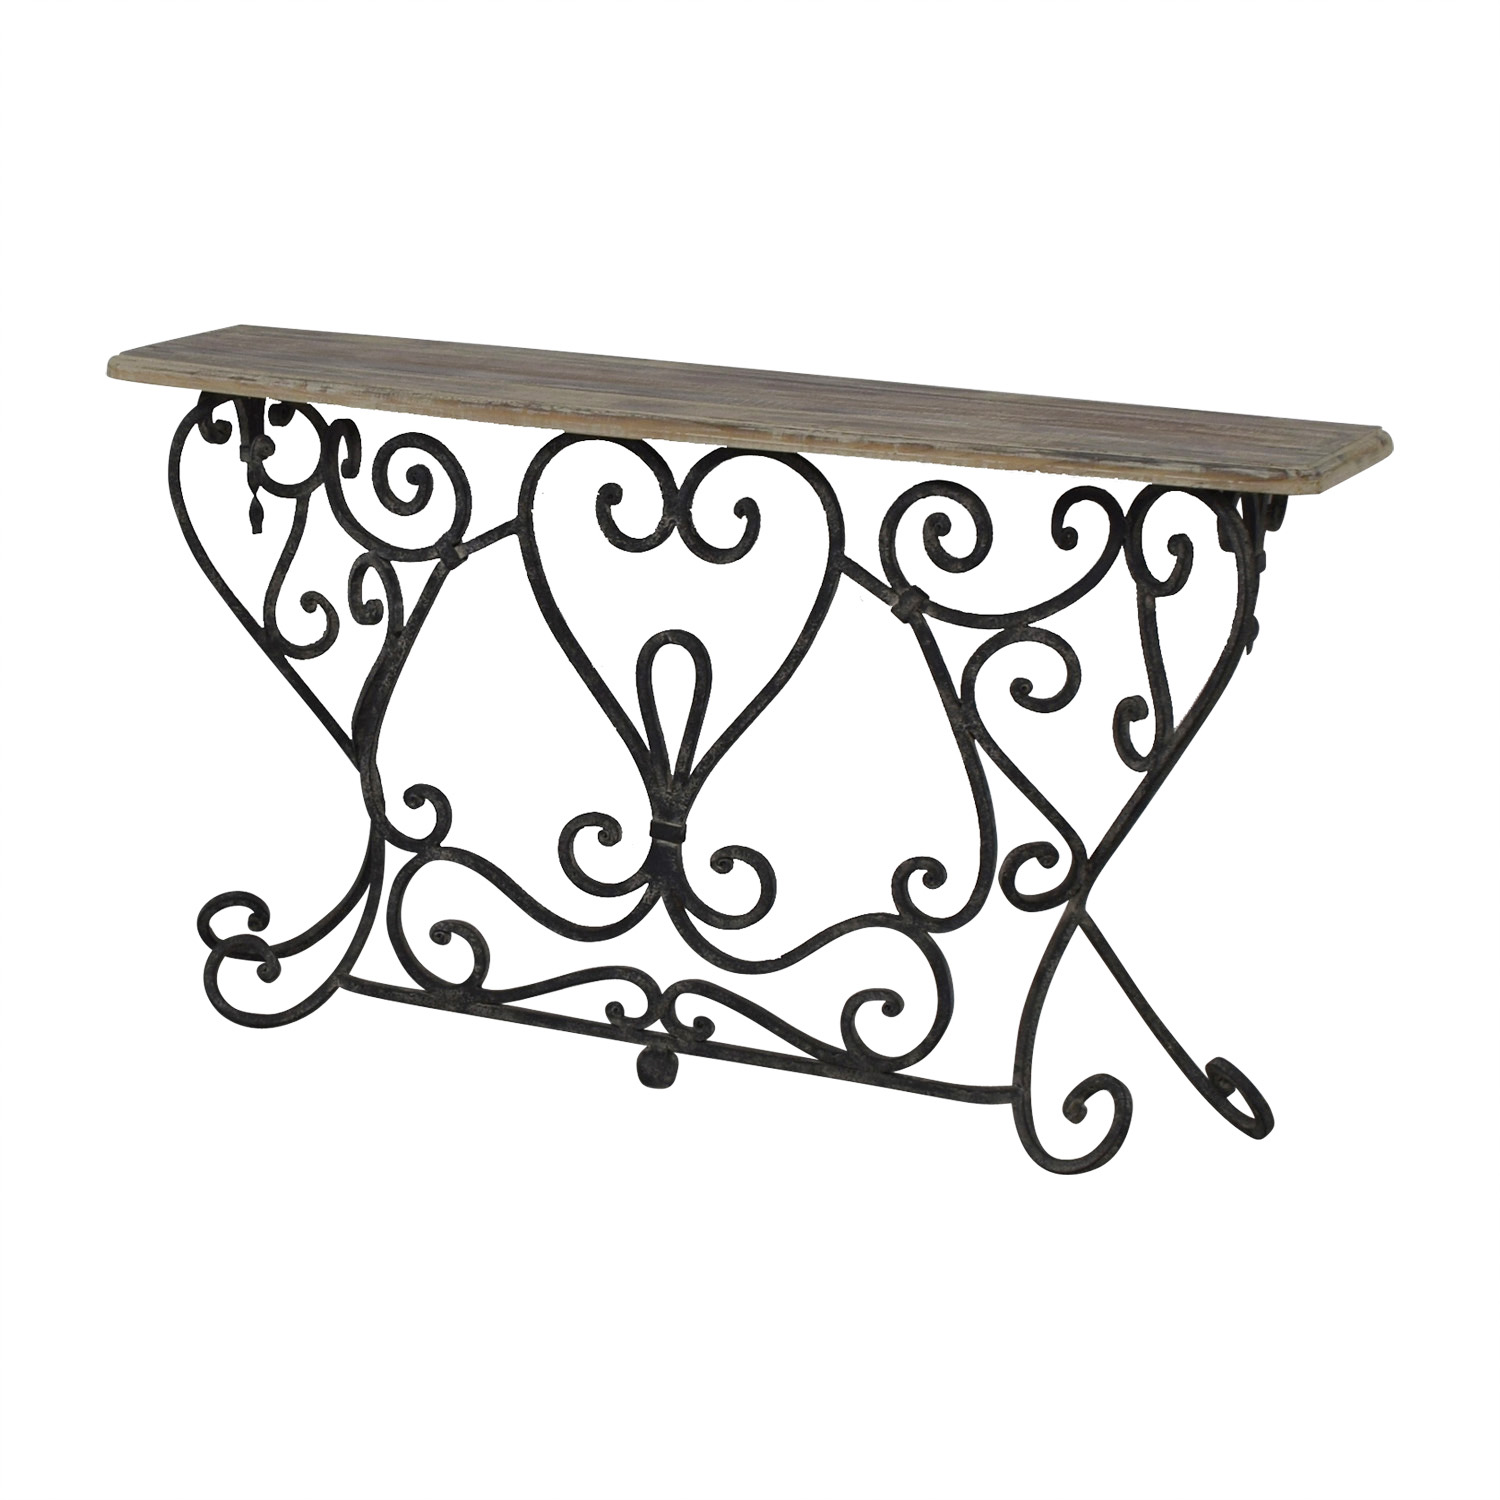 - 90% OFF - Wrought Iron Console Table / Tables